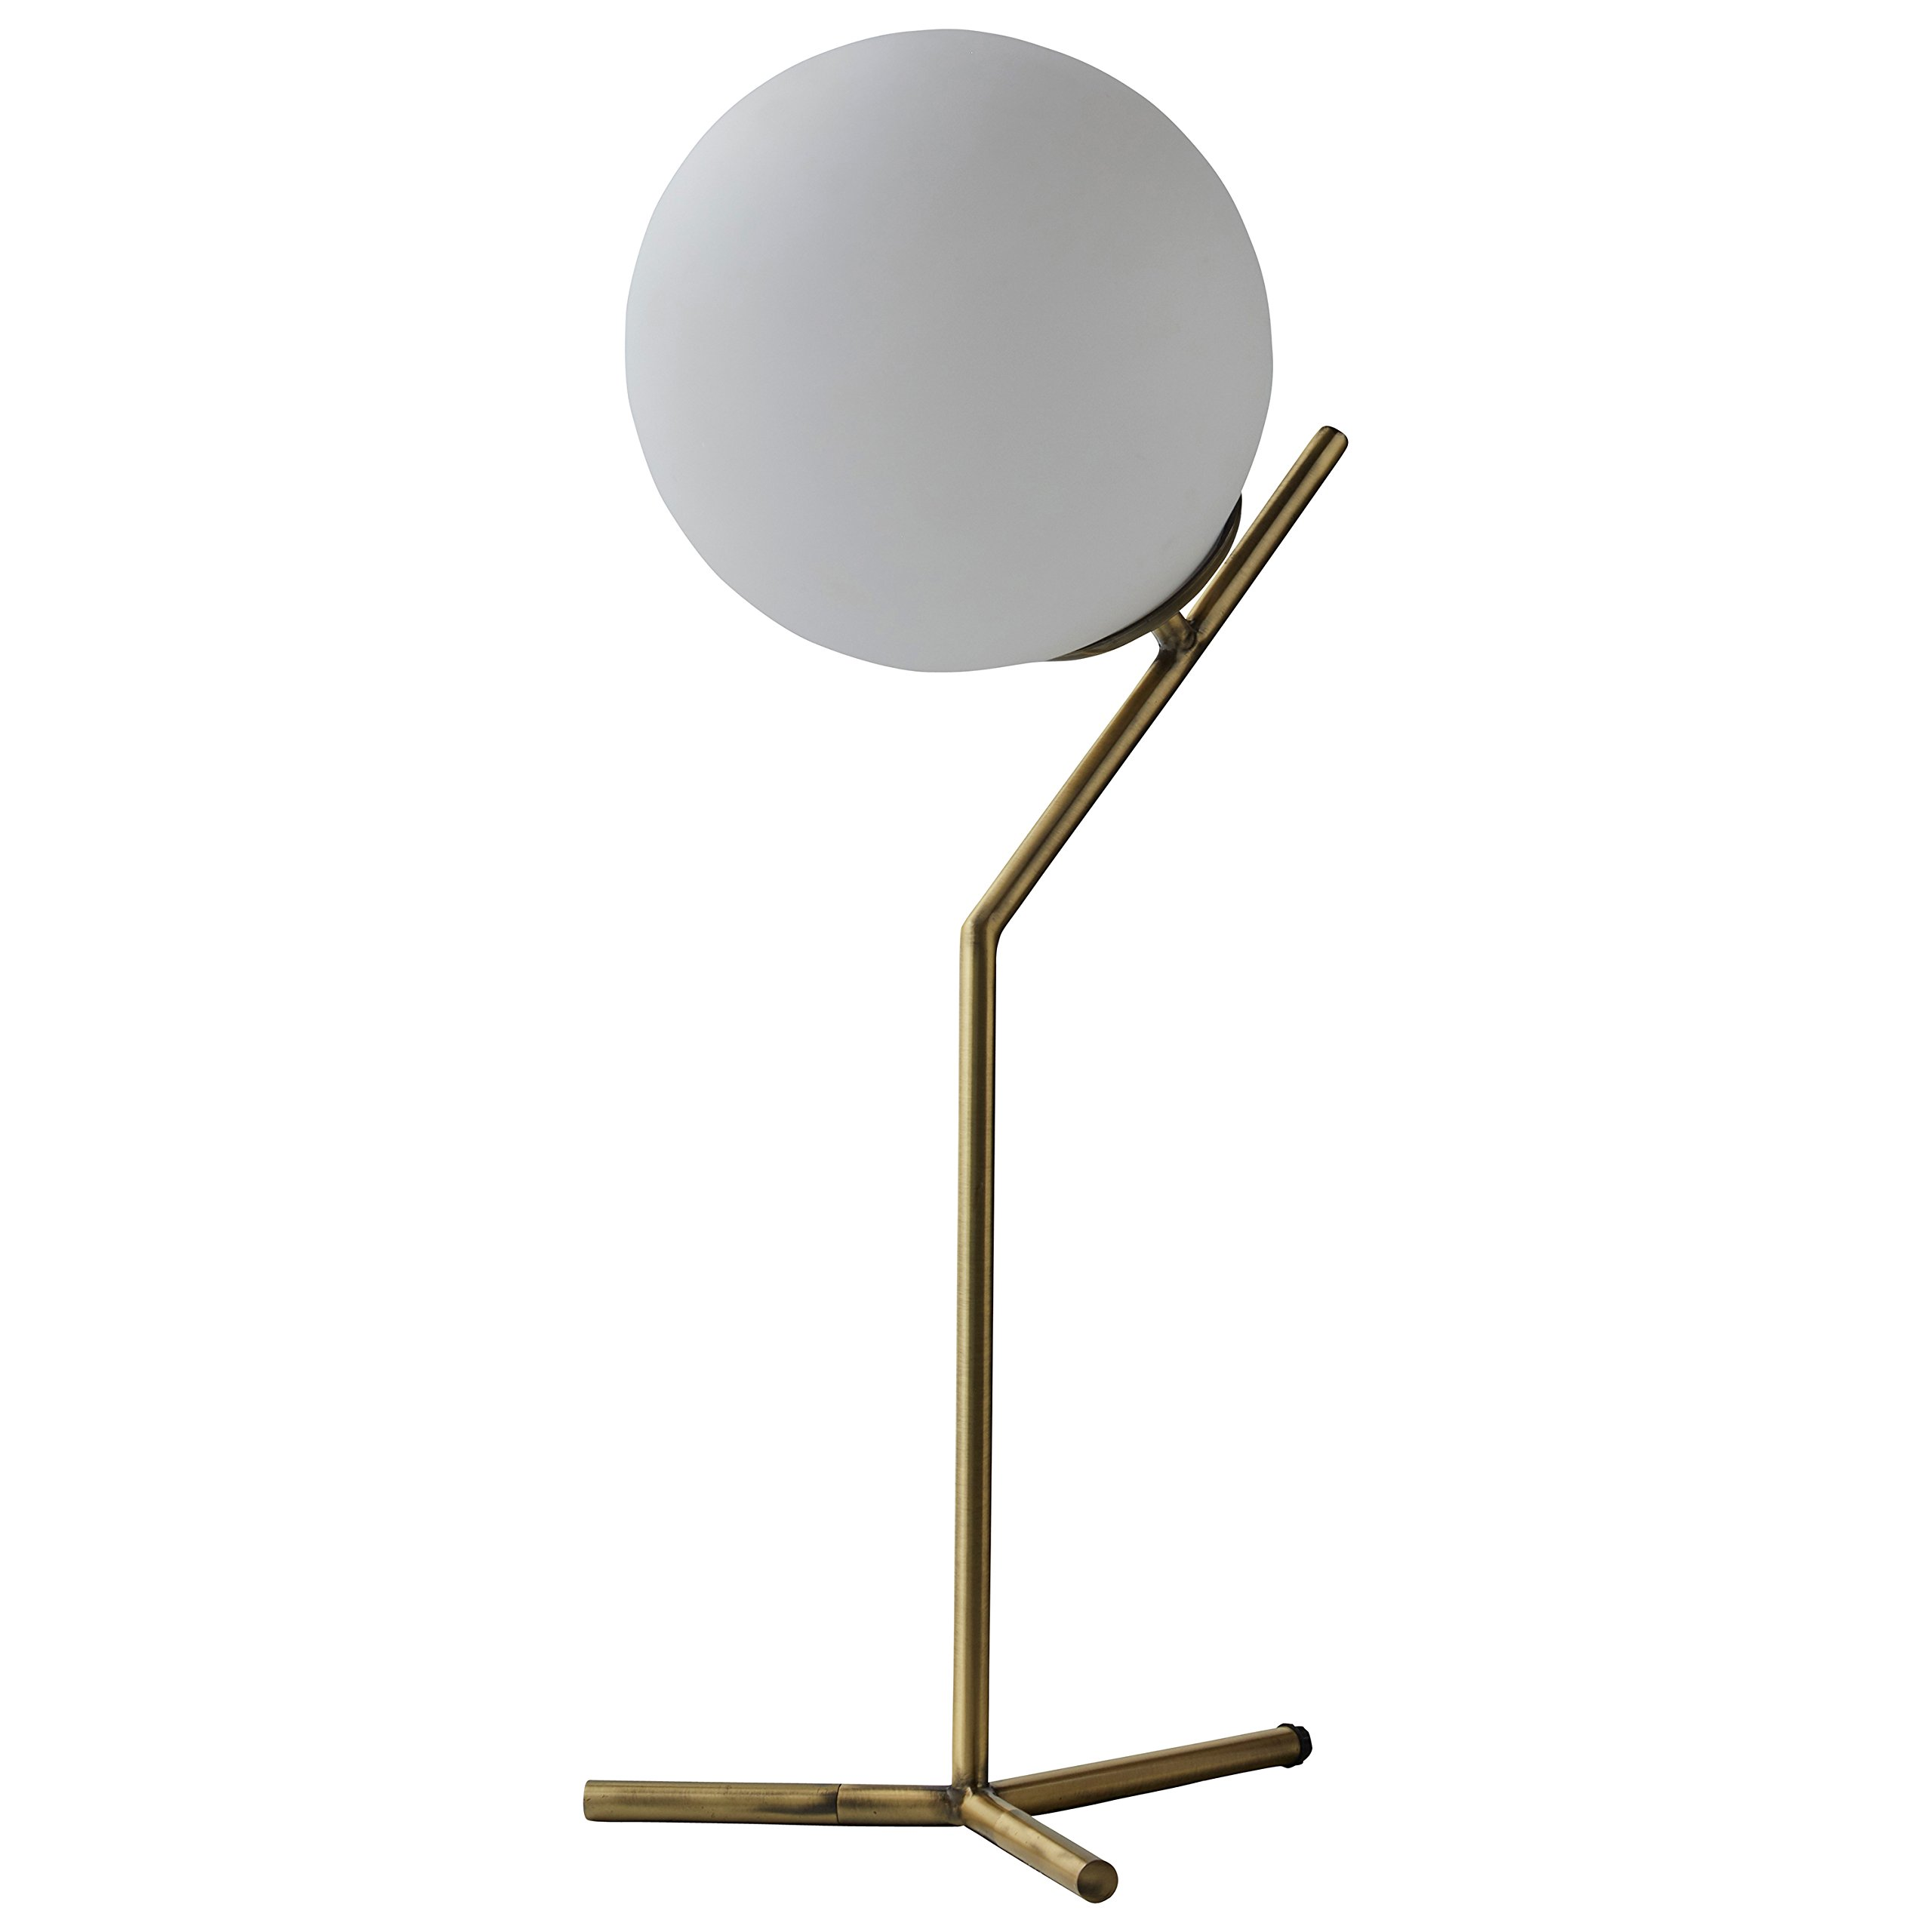 Rivet Glass Ball and Angled Metal Table Lamp with Bulb, 21.5''H, Brass by Rivet (Image #4)